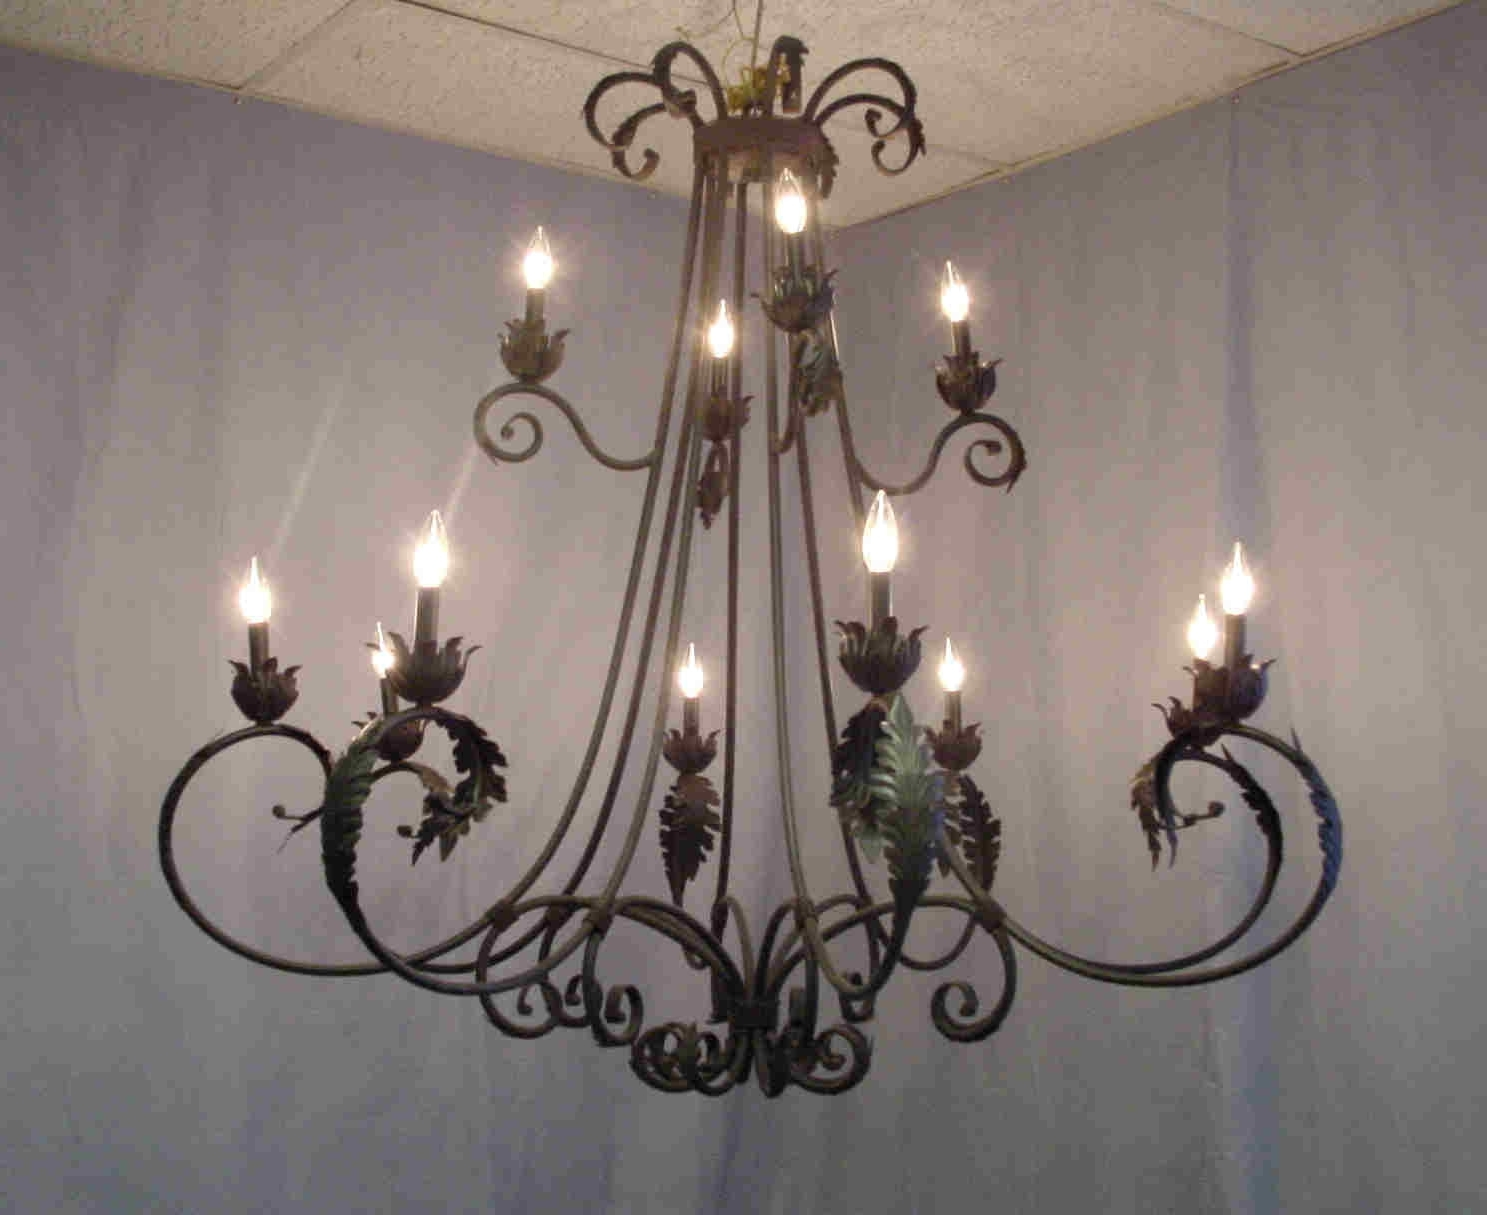 Vintage Wrought Iron Chandelier Intended For Well Liked Rustic Iron Chandelier Design Ideas — Fabrizio Design : Ideas For (View 13 of 20)